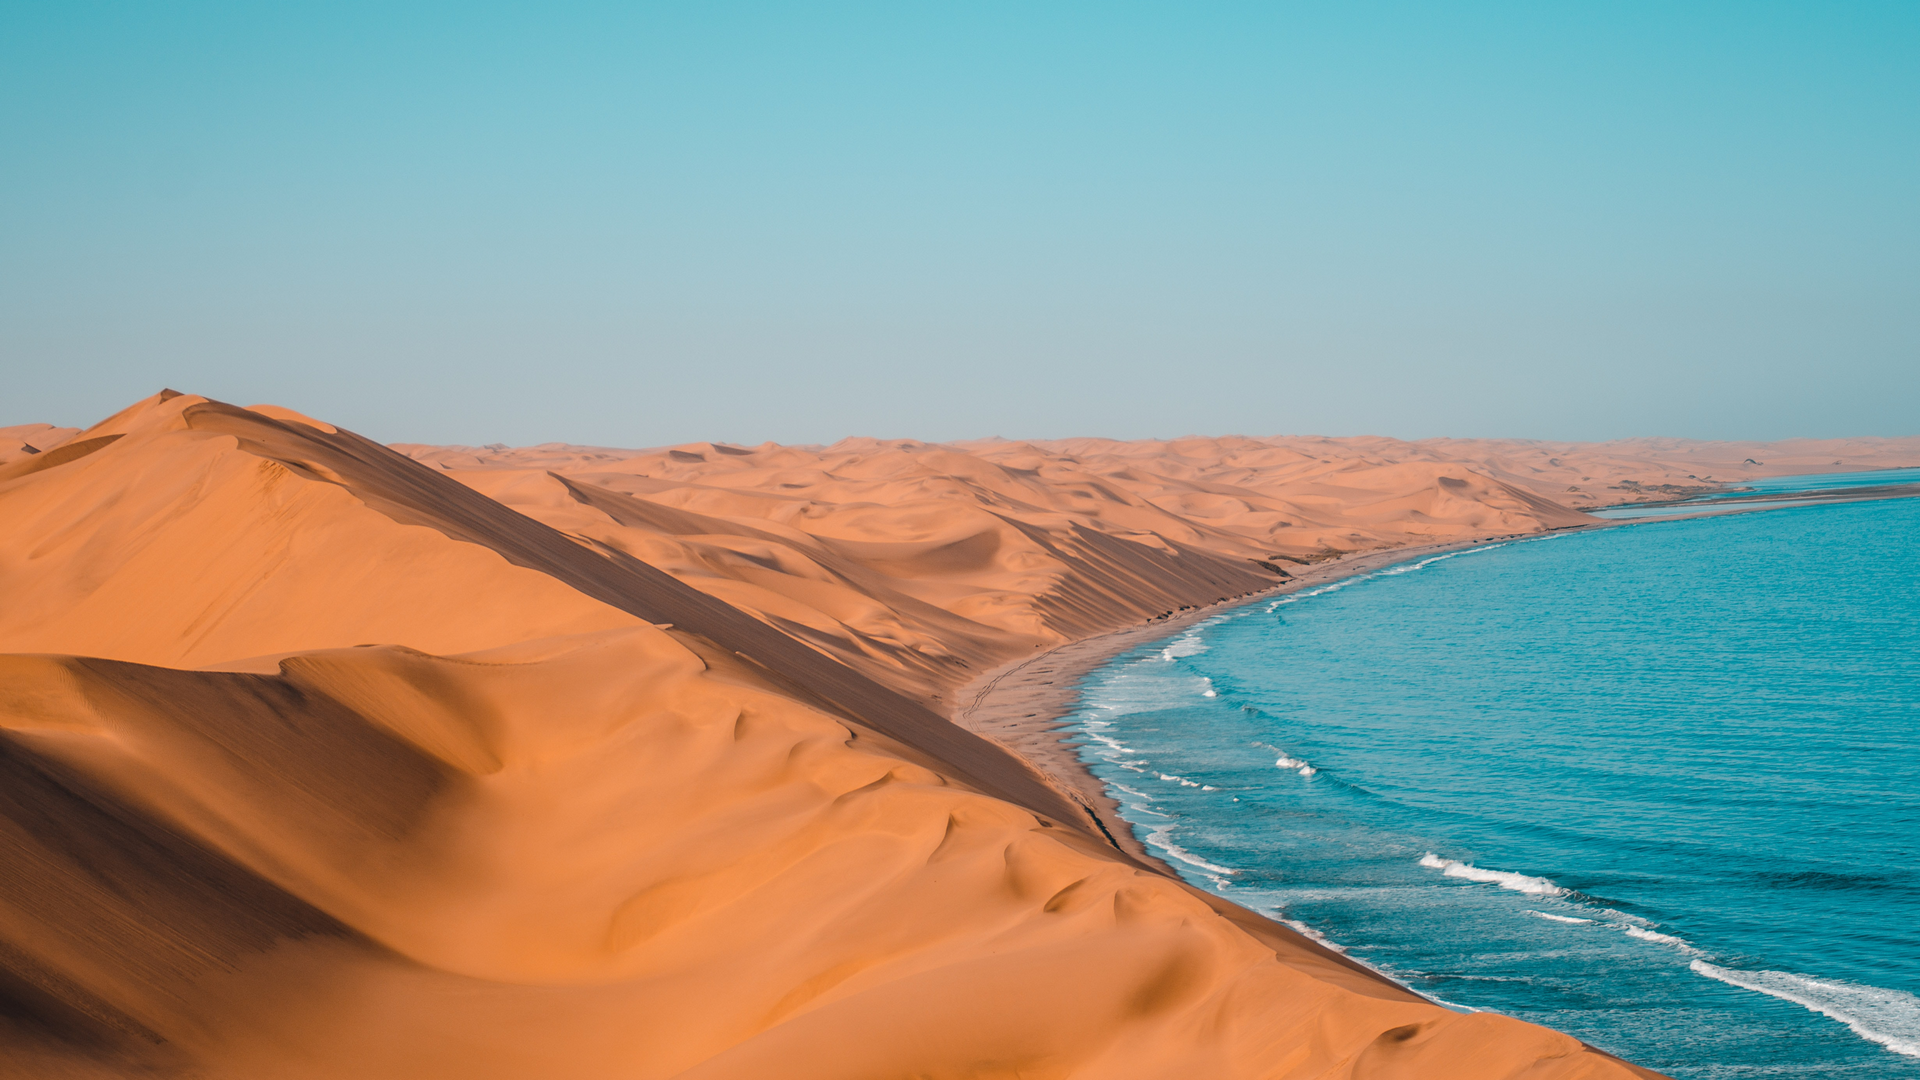 A view in Namibia